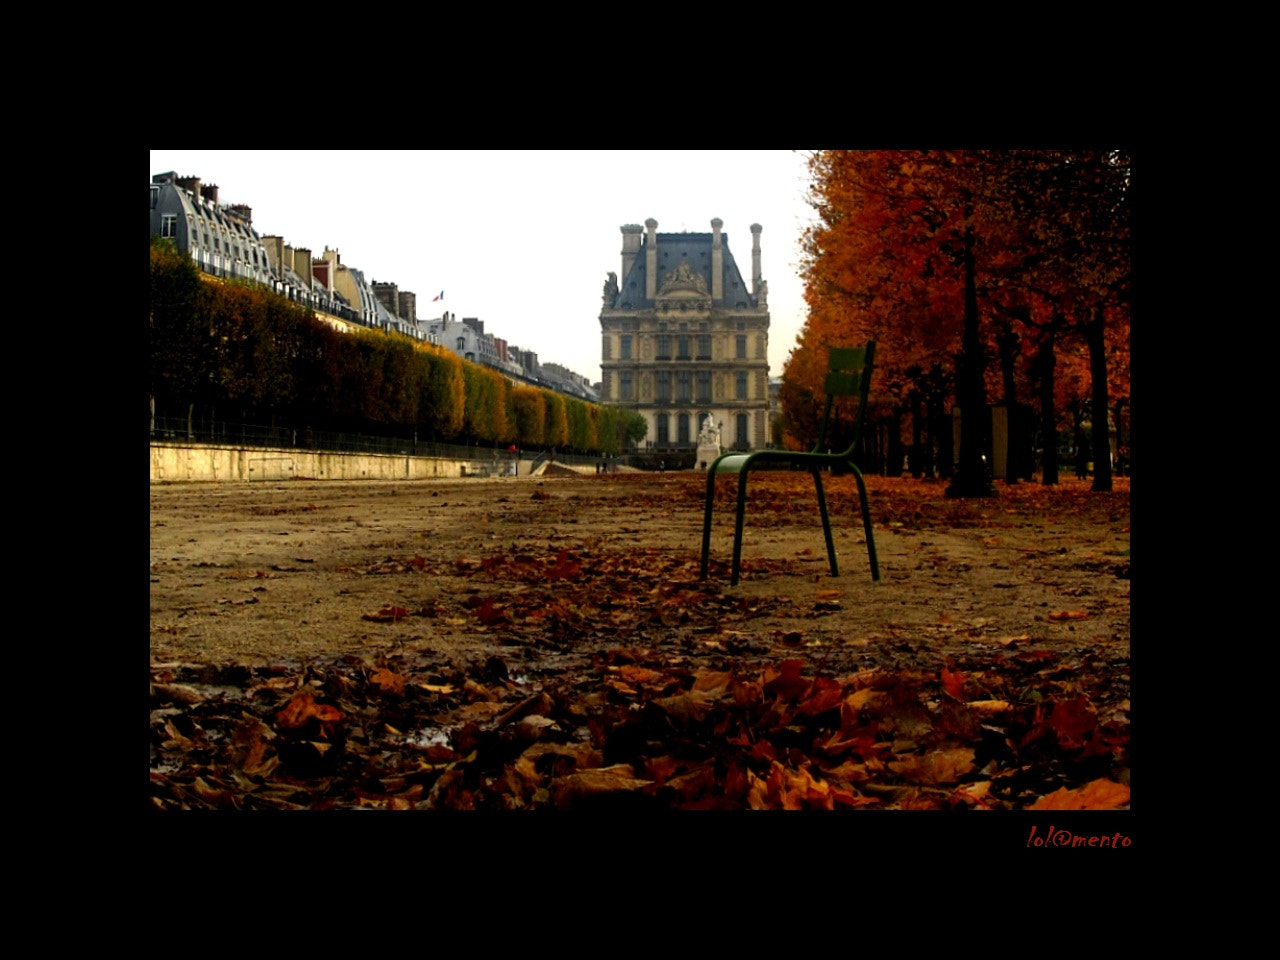 Photograph La chaise des Tuileries by Lola Mento Mucho on 500px